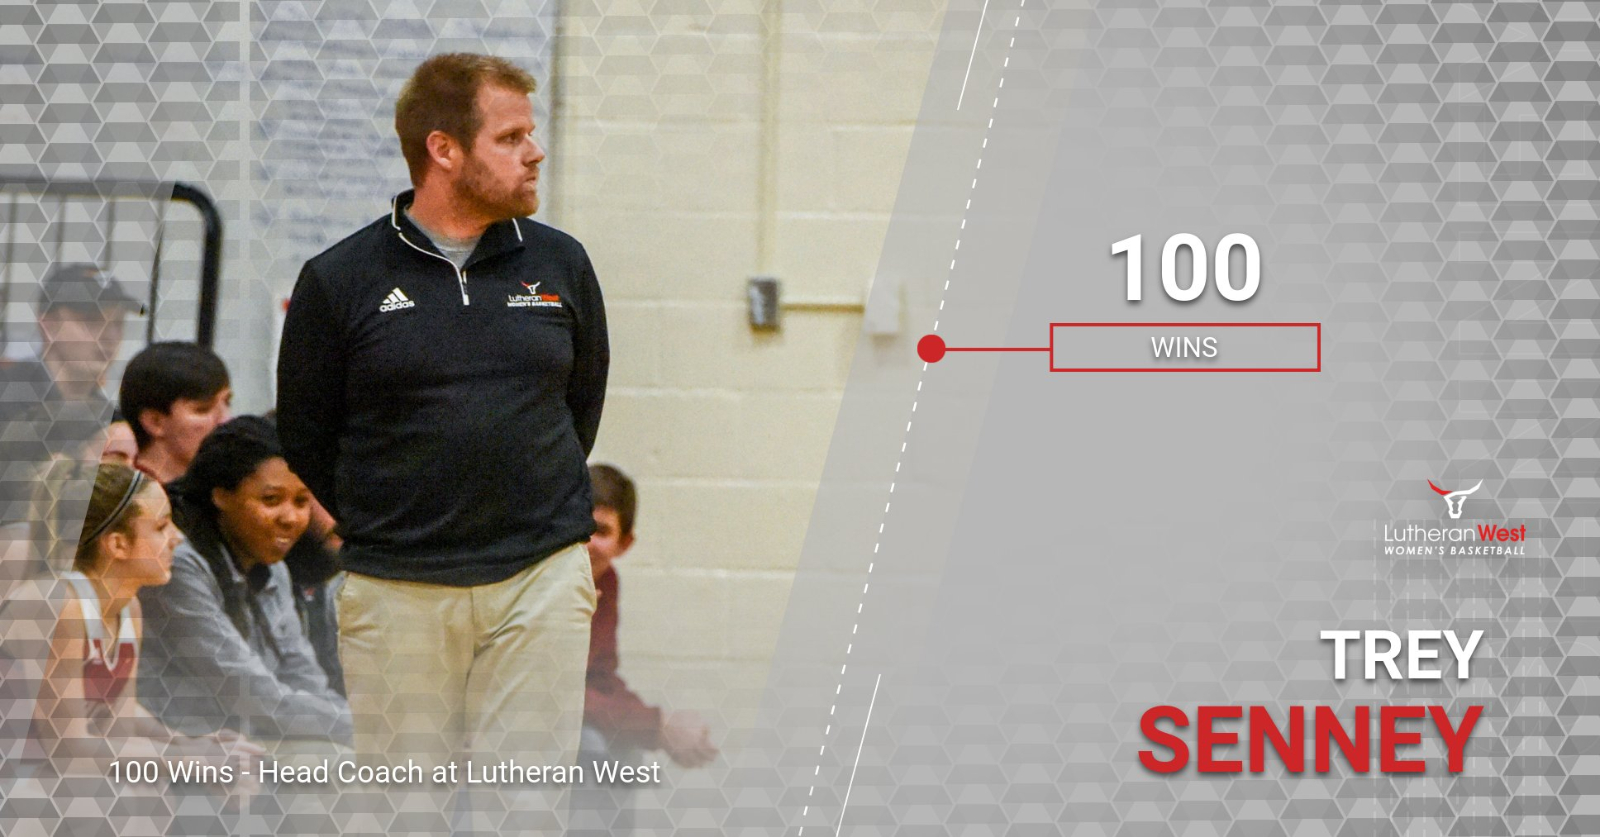 Senney Notches 100 Wins at Lutheran West